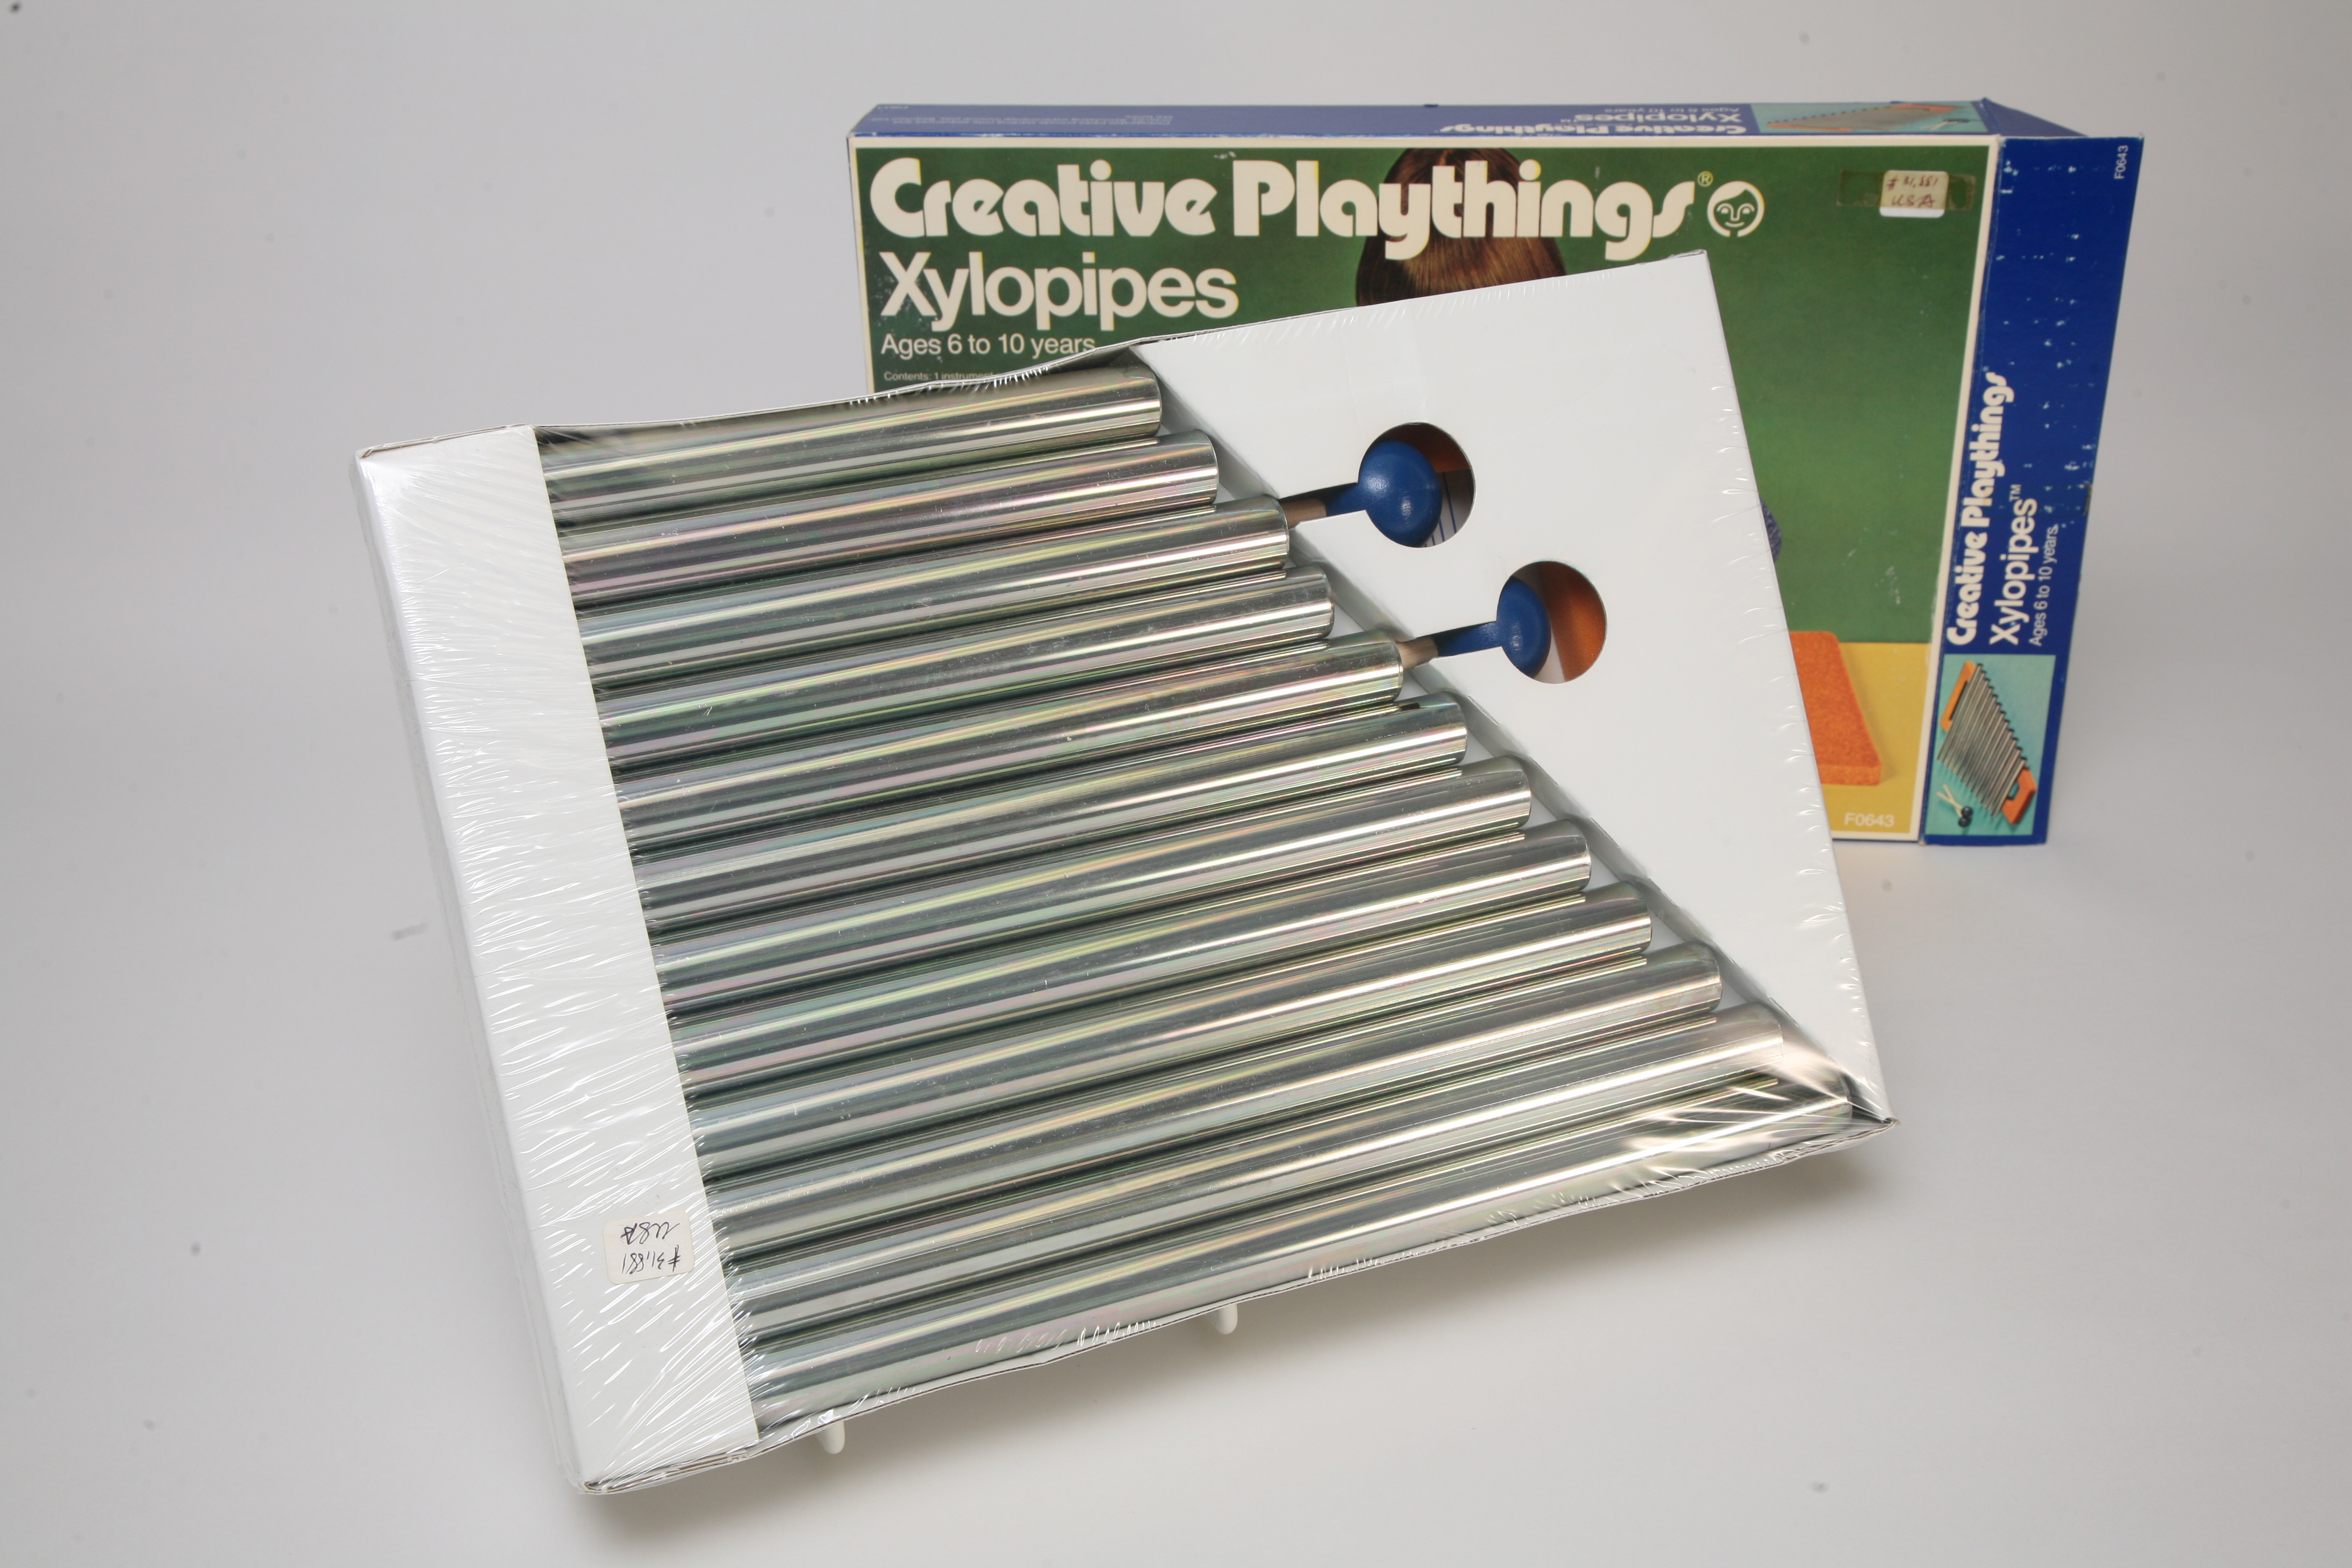 Creative Files File:tcmi Creative Playthings